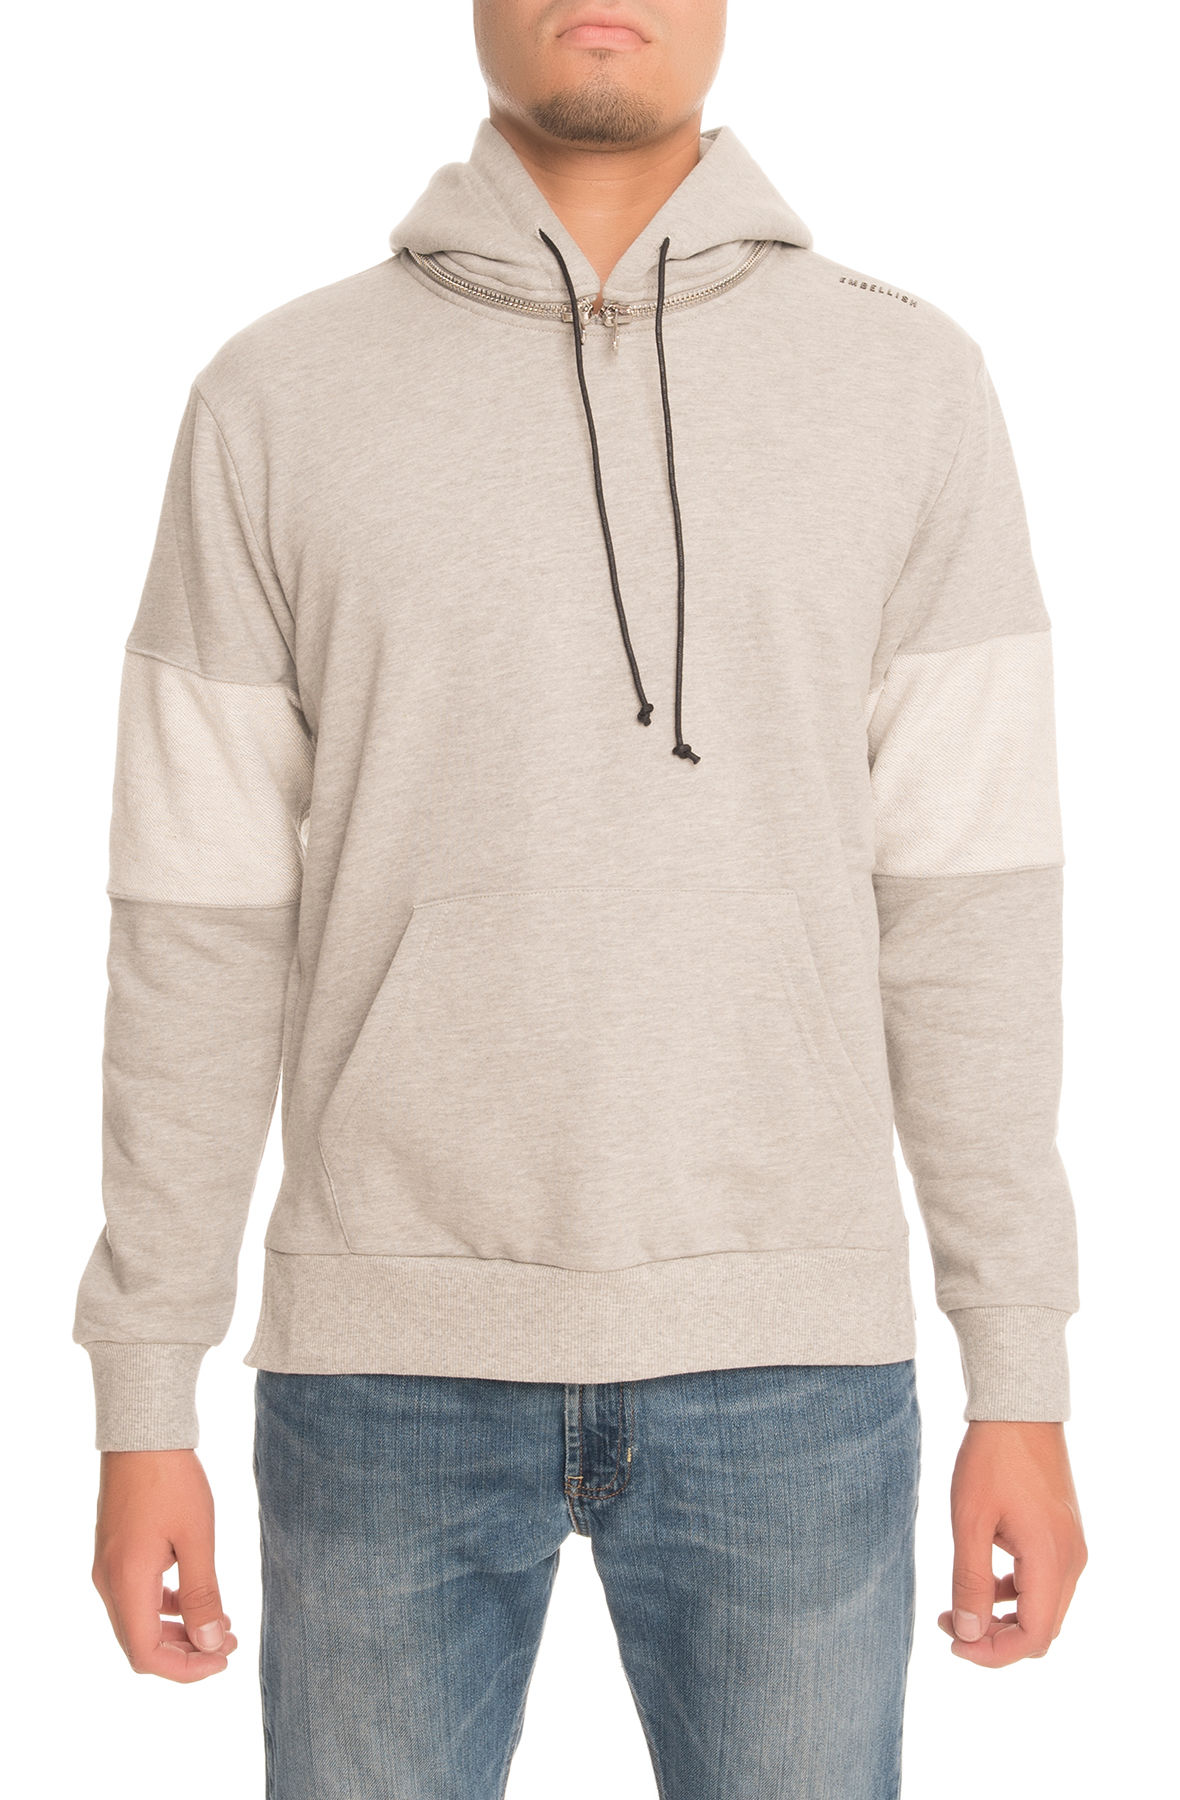 The Superior Hoodie in Heather Grey